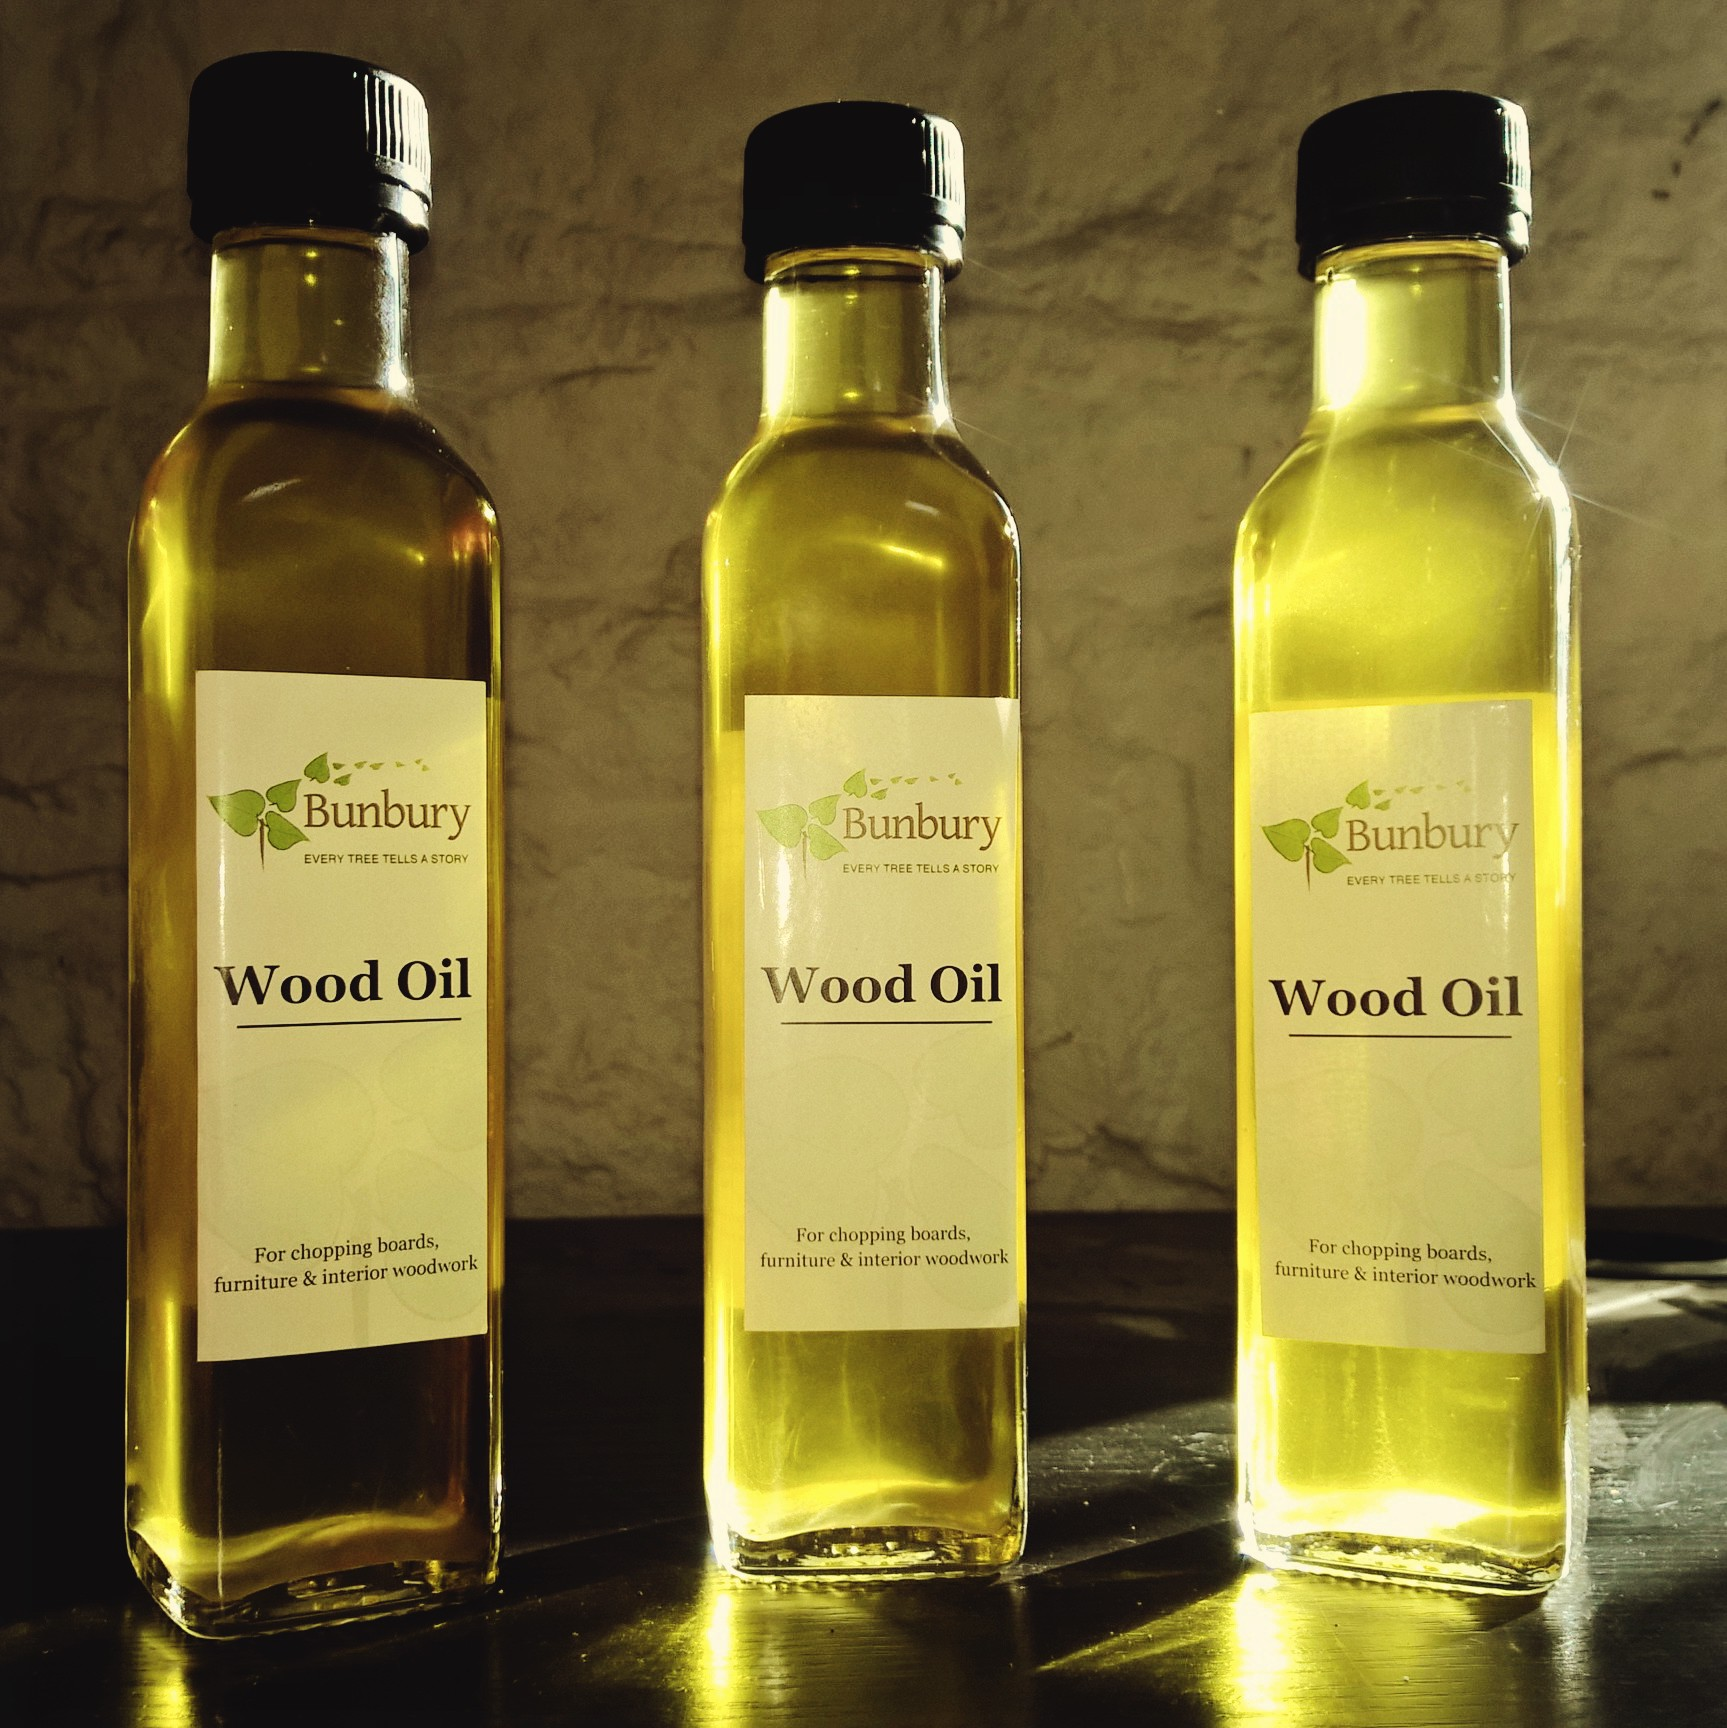 Nourishing Wood Oil for wooden chopping boards